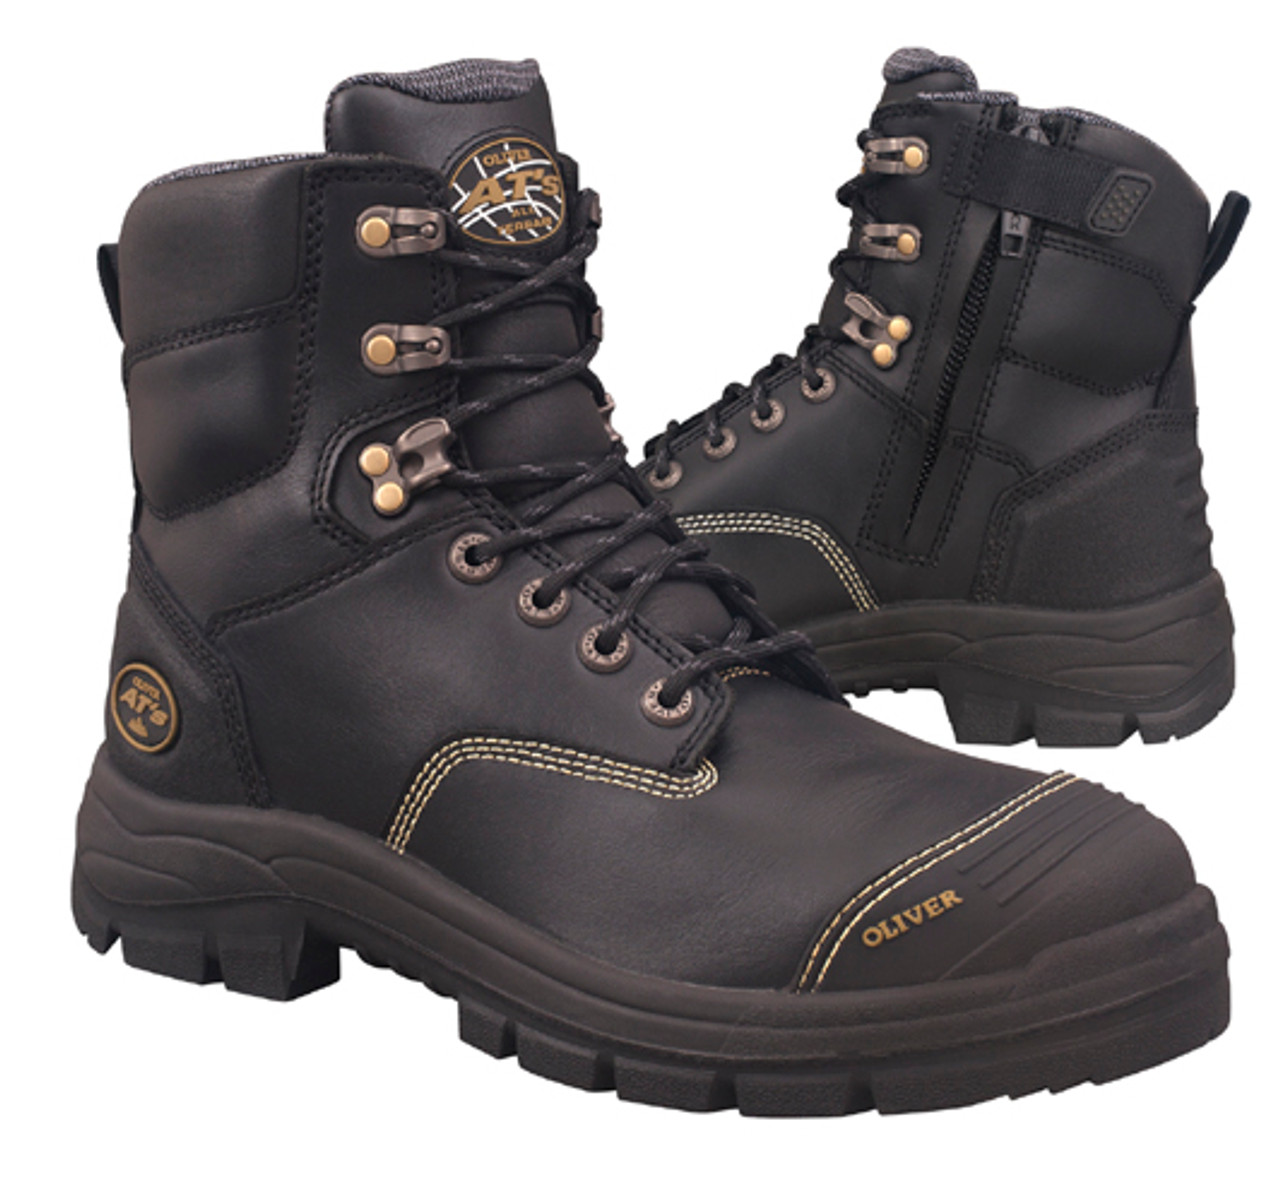 3c2d46a3f32 Oliver Boots AT55-345Z Zip Sided 150mm (6